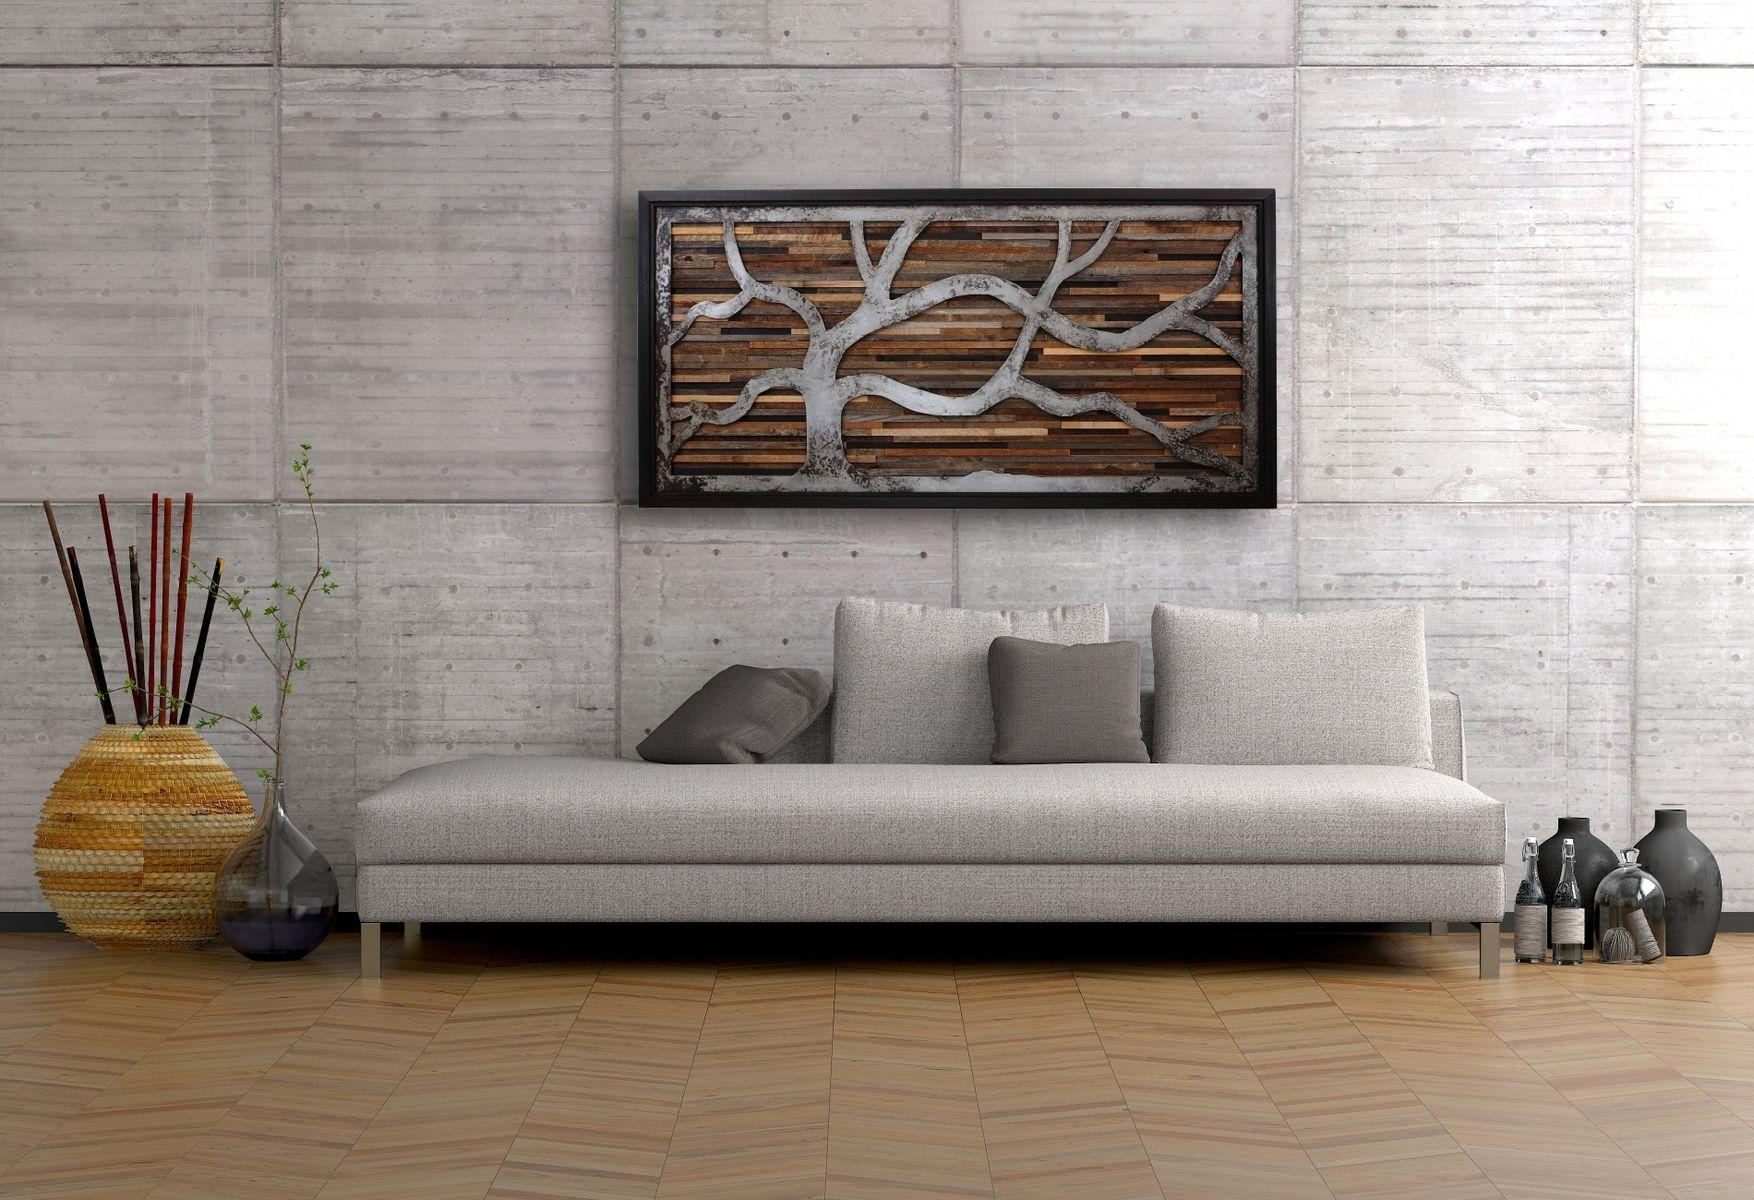 Wall Art Design Ideas: Vertically Artwork Wall Art Made Of Wood Pertaining To Natural Wood Wall Art (View 12 of 20)